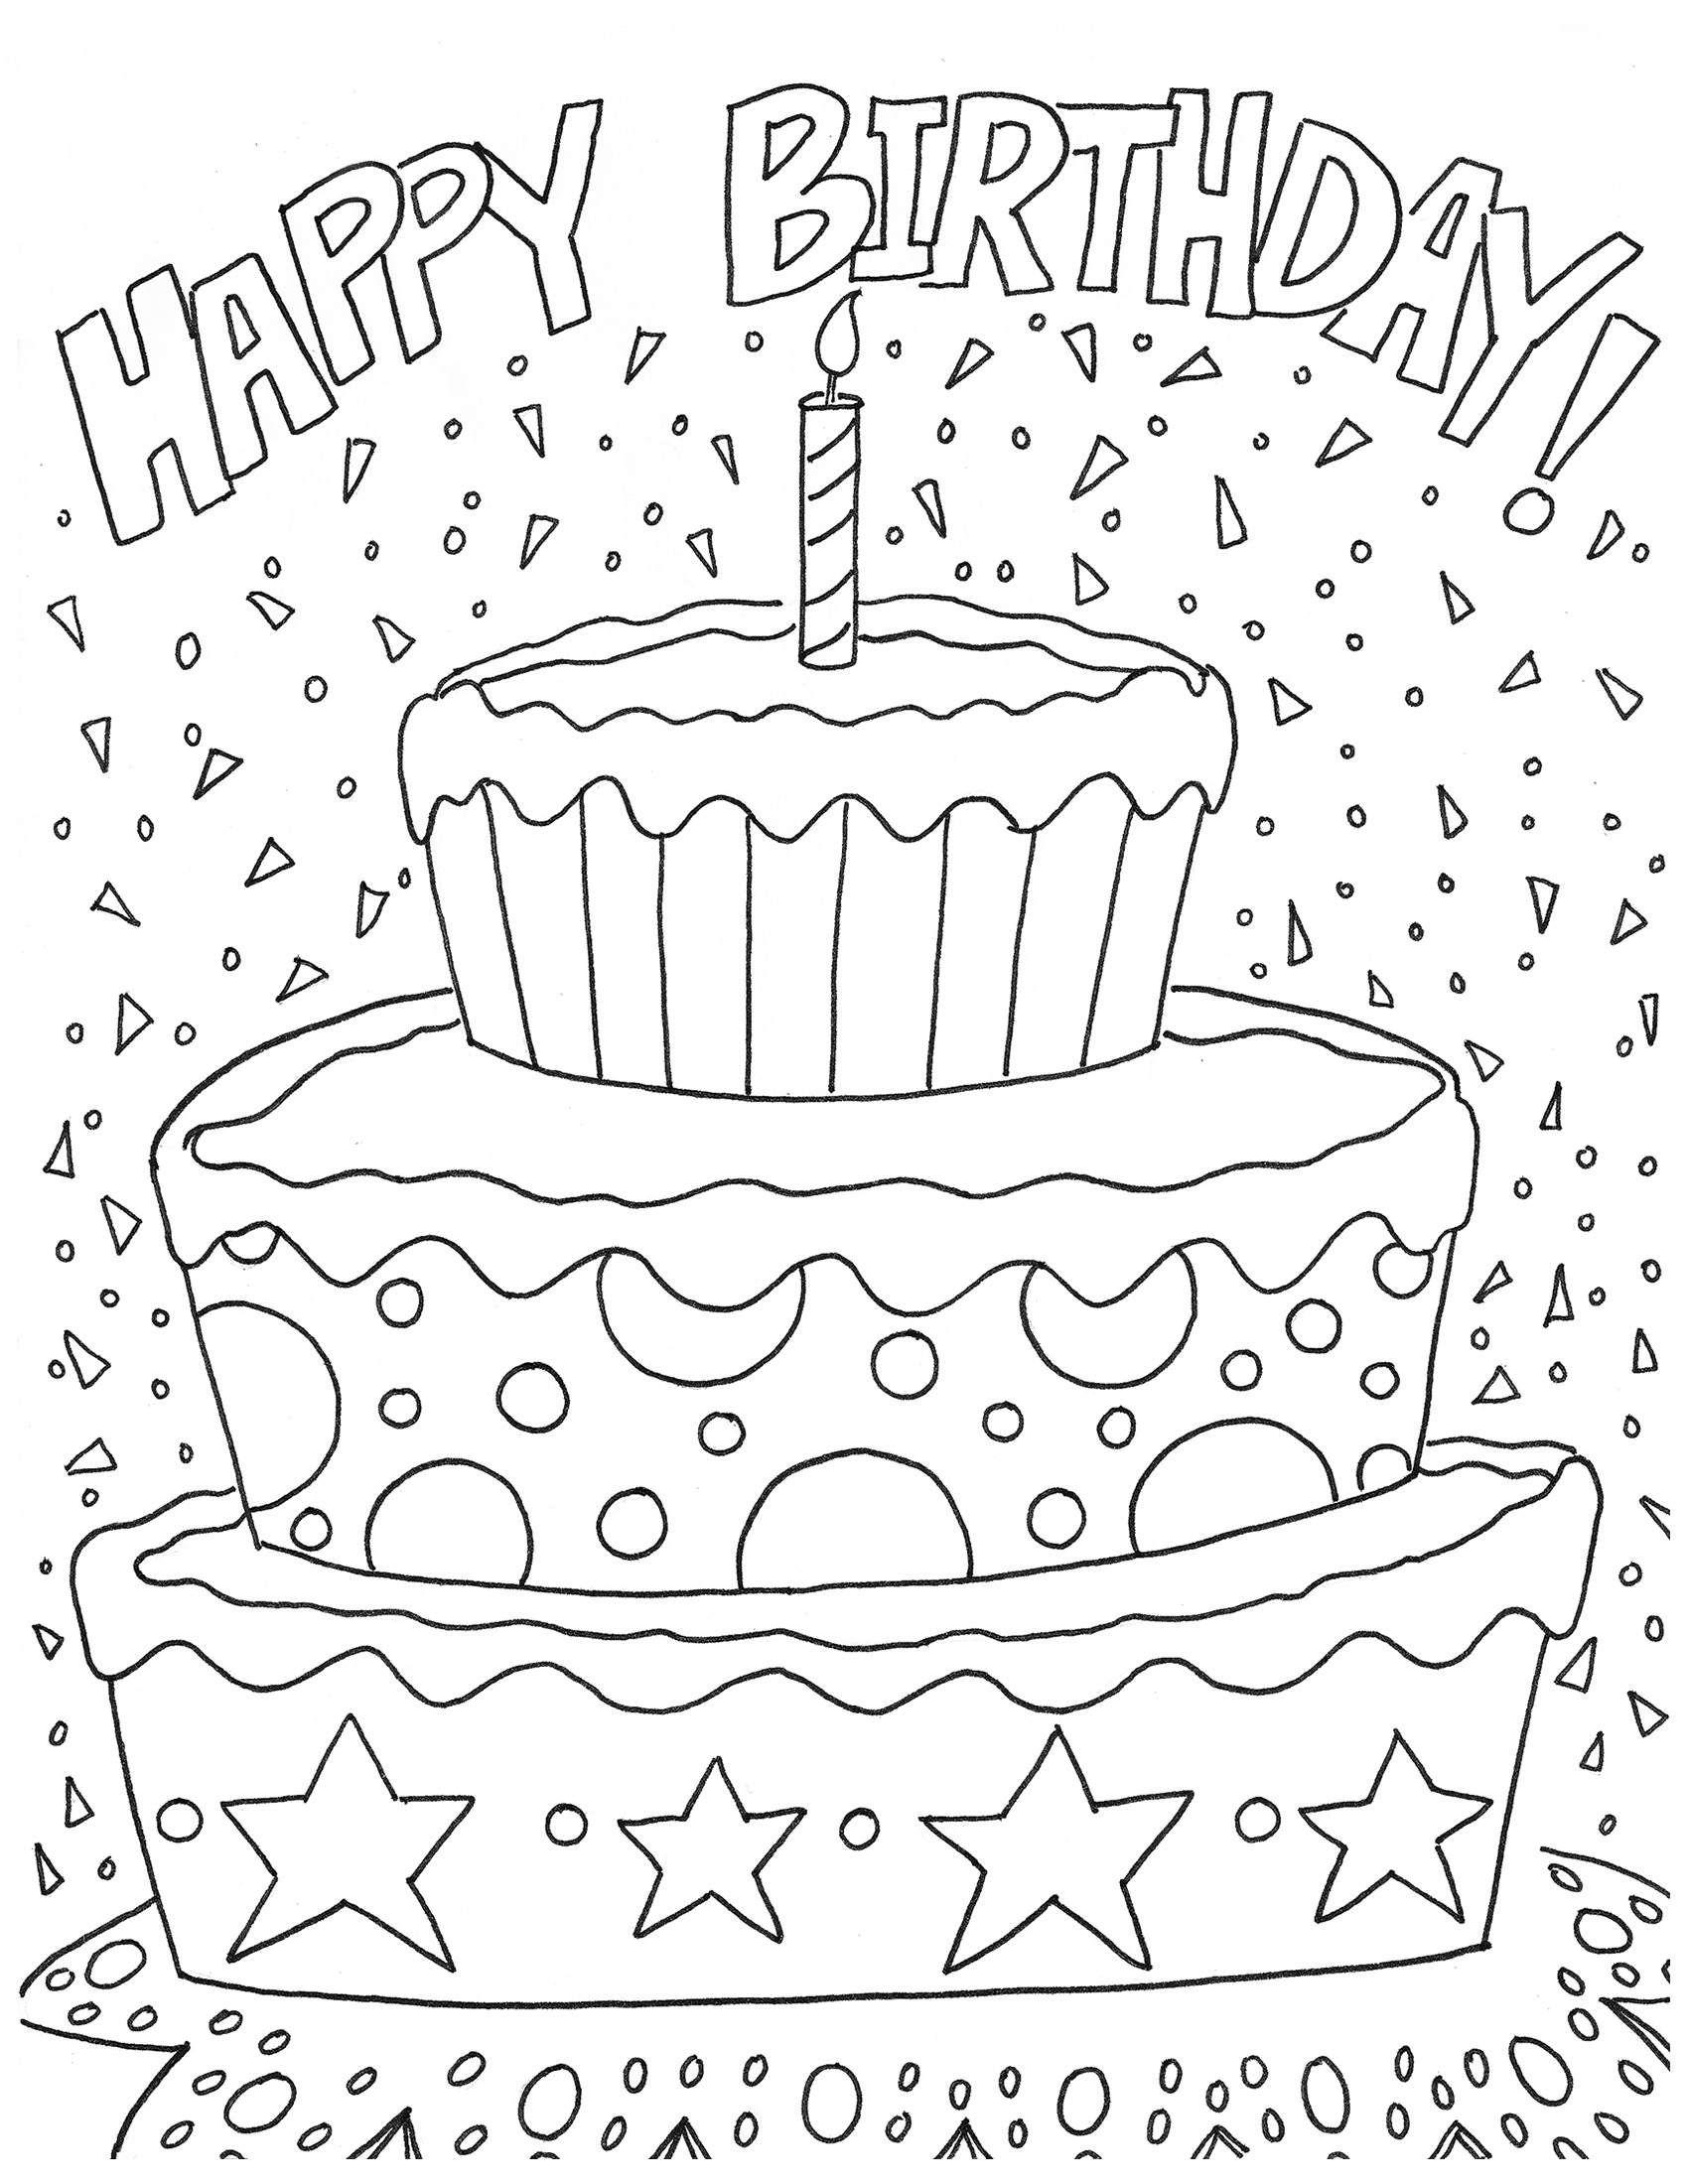 free printable coloring birthday cards birthday coloring page coloring cards birthday printable free